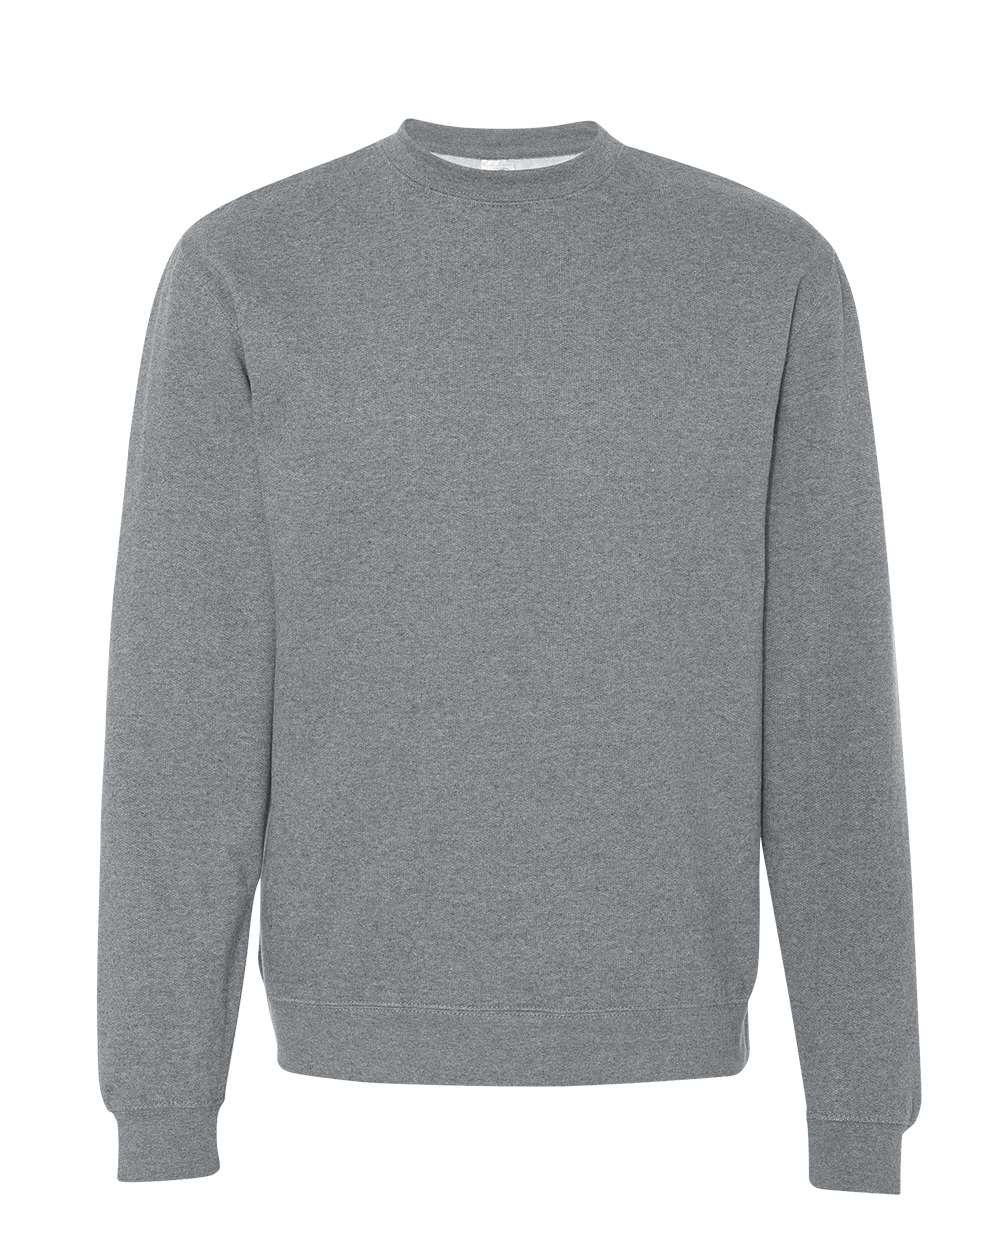 Independent-Trading-Co-Midweight-Crewneck-Sweatshirt-SS3000-up-to-3XL miniature 27